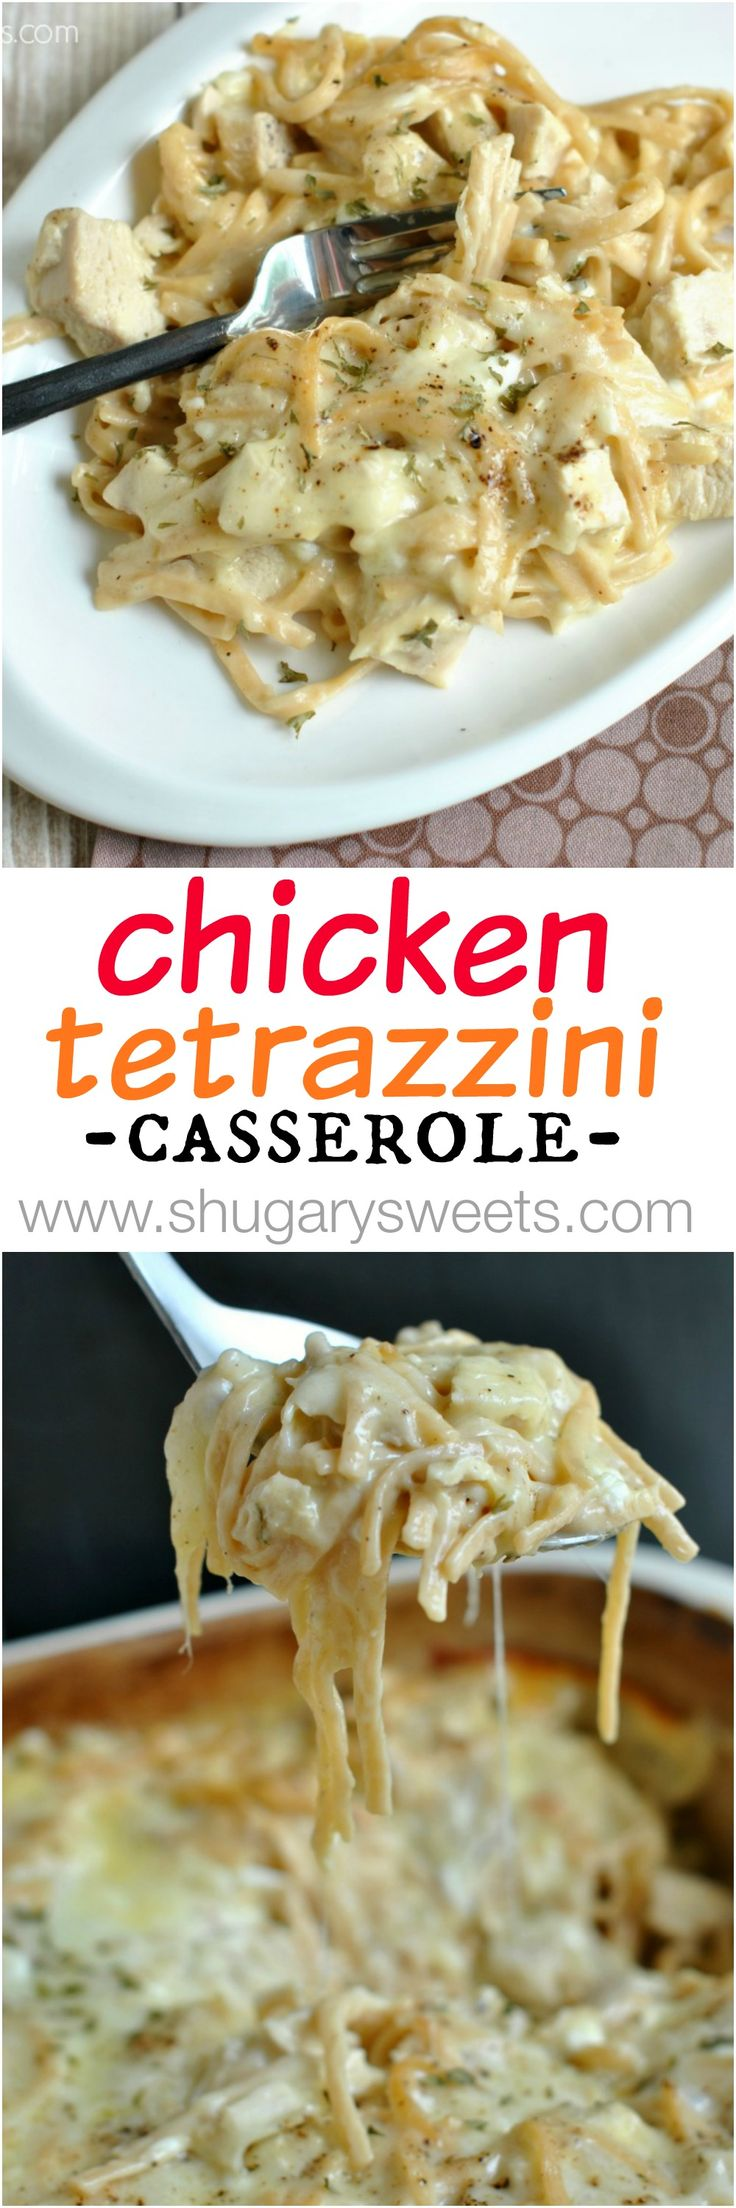 Chicken Tetrazzini. Very good. RECOMMEND. My changes: Baked at 325, not 300, did not cook noodles all the way-the baking finishes the cooking. This is very creamy!